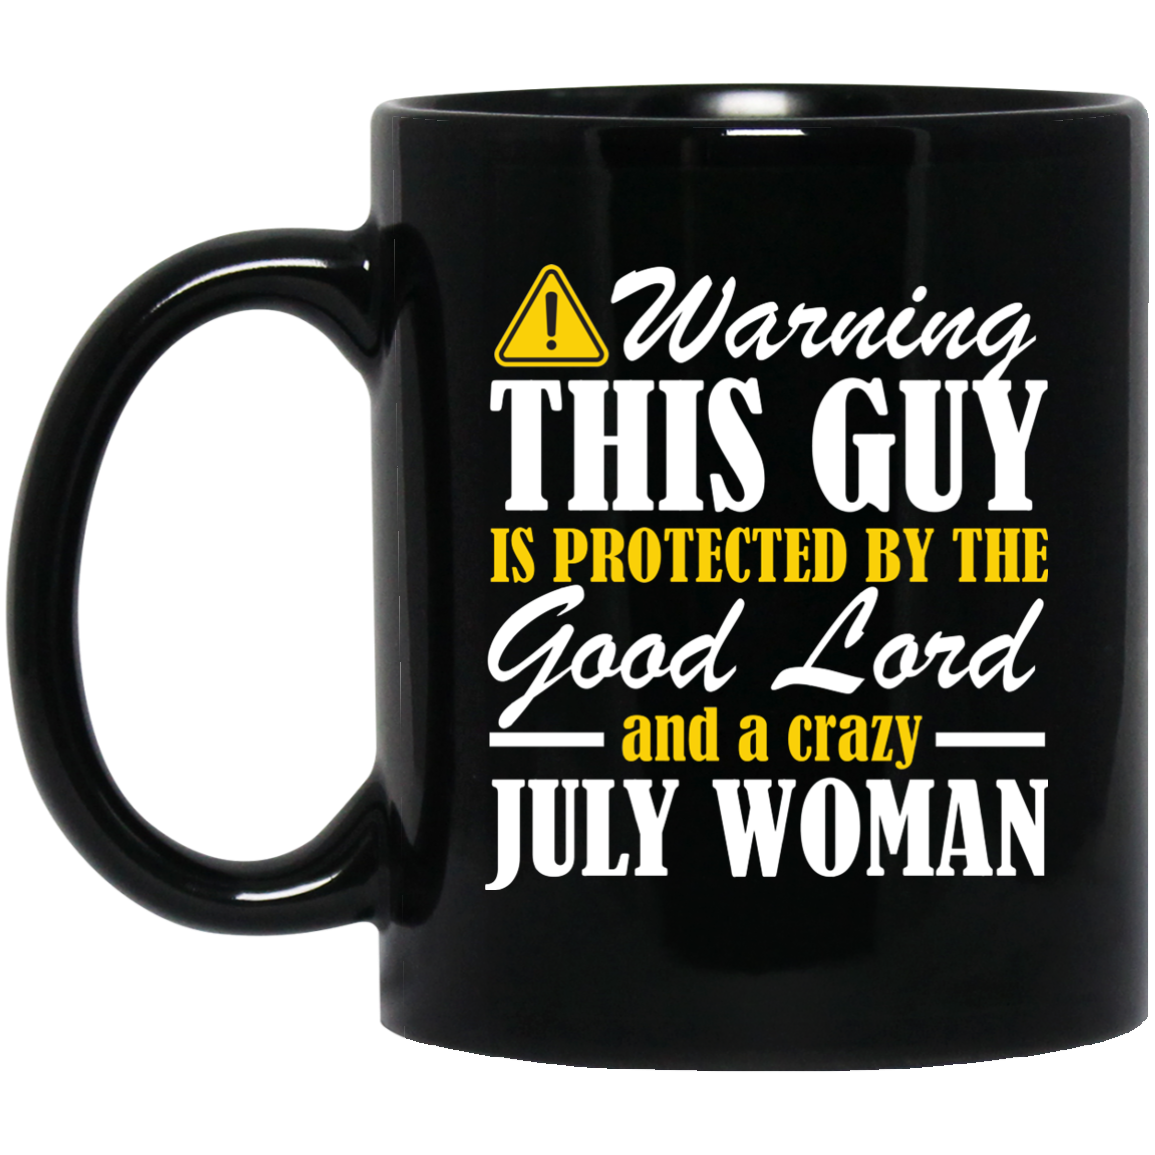 July Woman Mug July Birthday Mugs July Mugs 15Oz